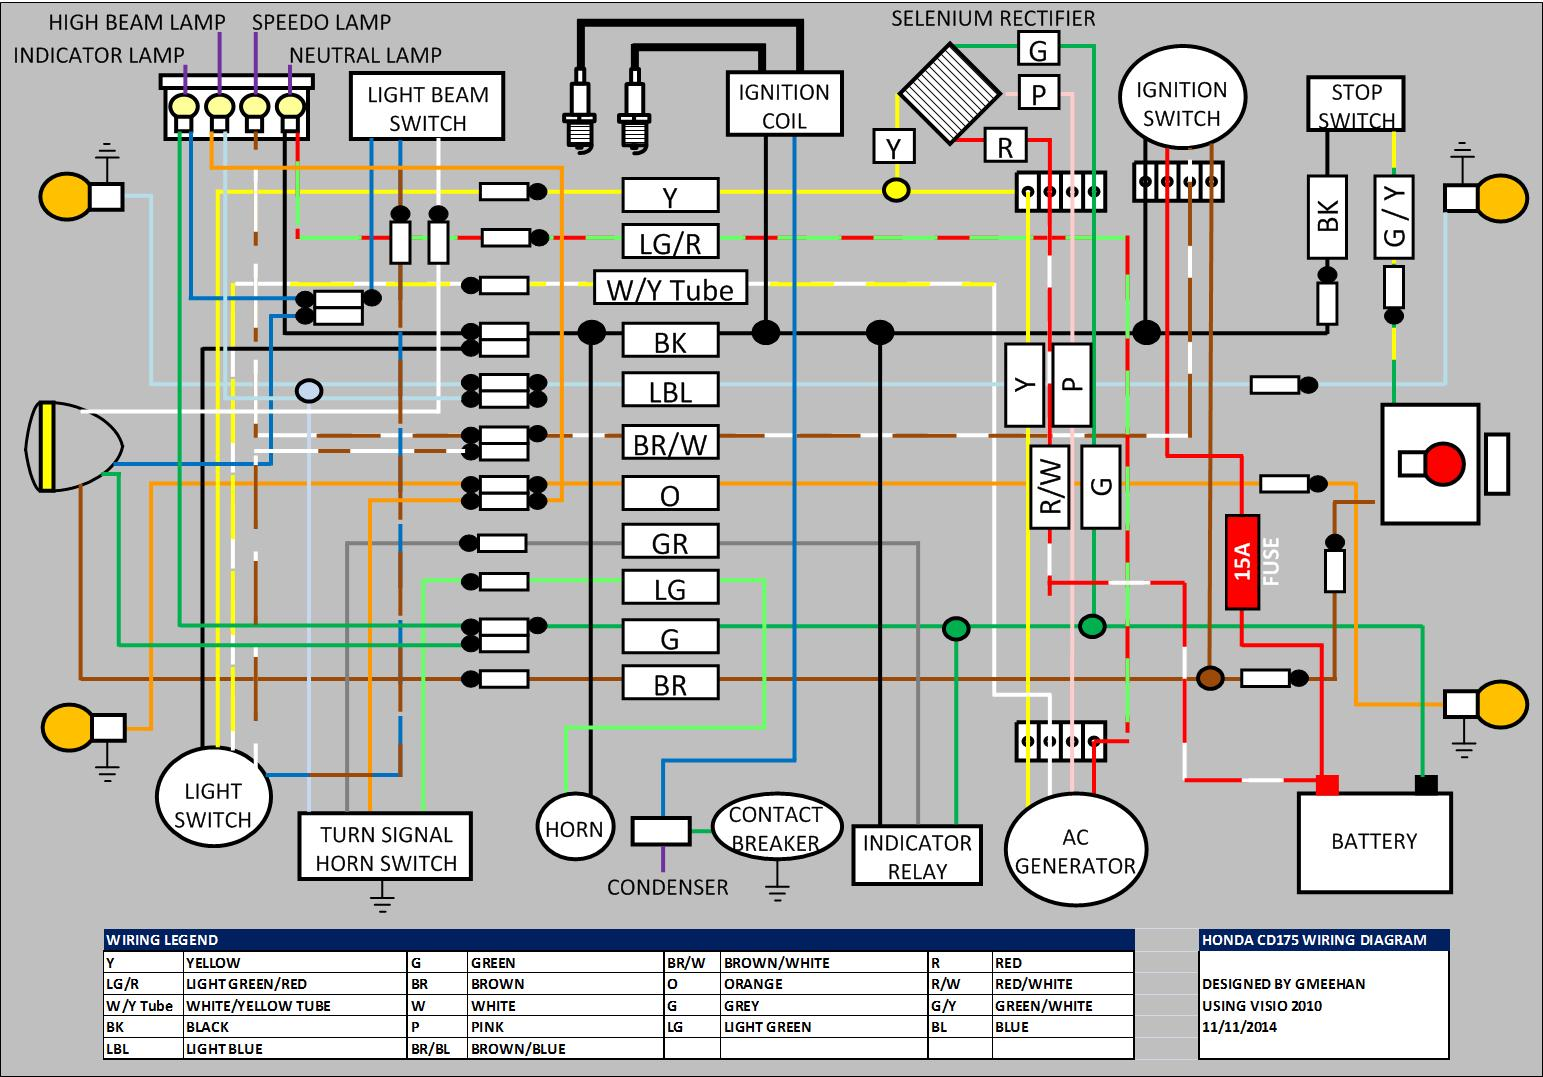 Wiring Diagram For Steve Opinions About 05 Durango Lighting Honda Cd175 Stereo In A System